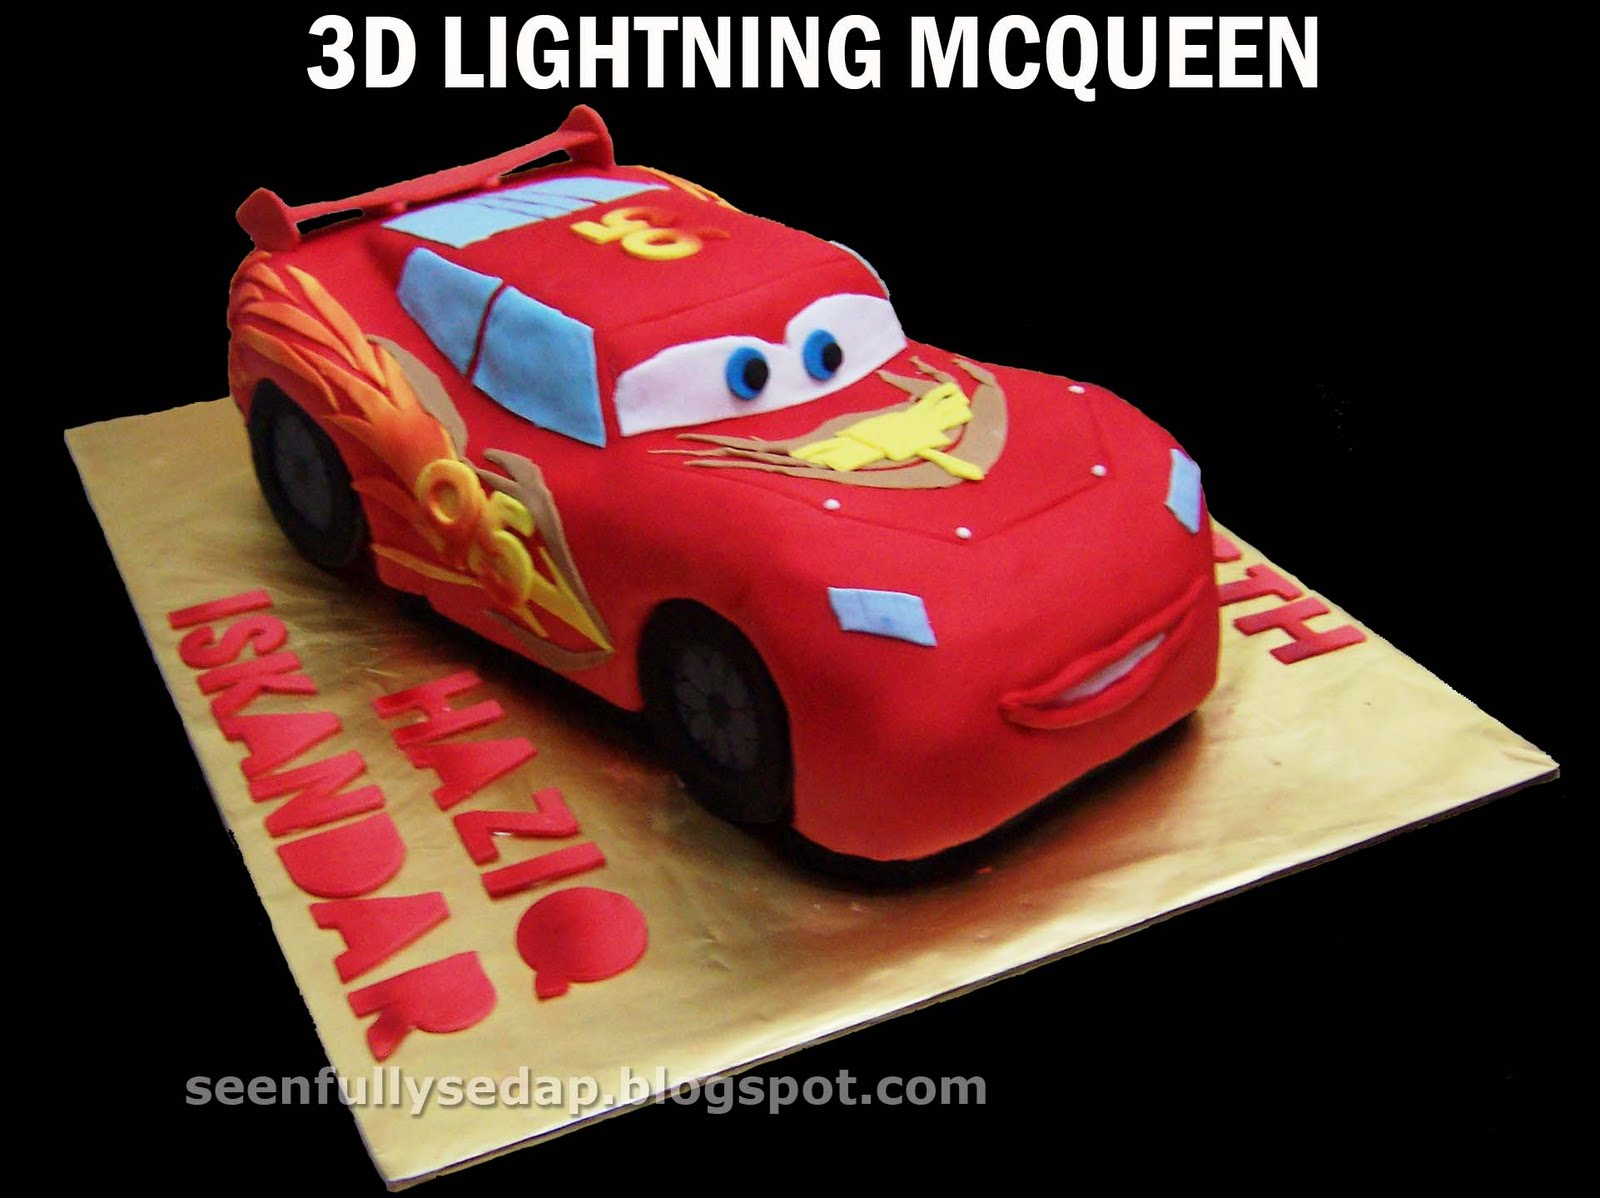 Lightning Mcqueen Birthday Cake Uk Image Inspiration of Cake and